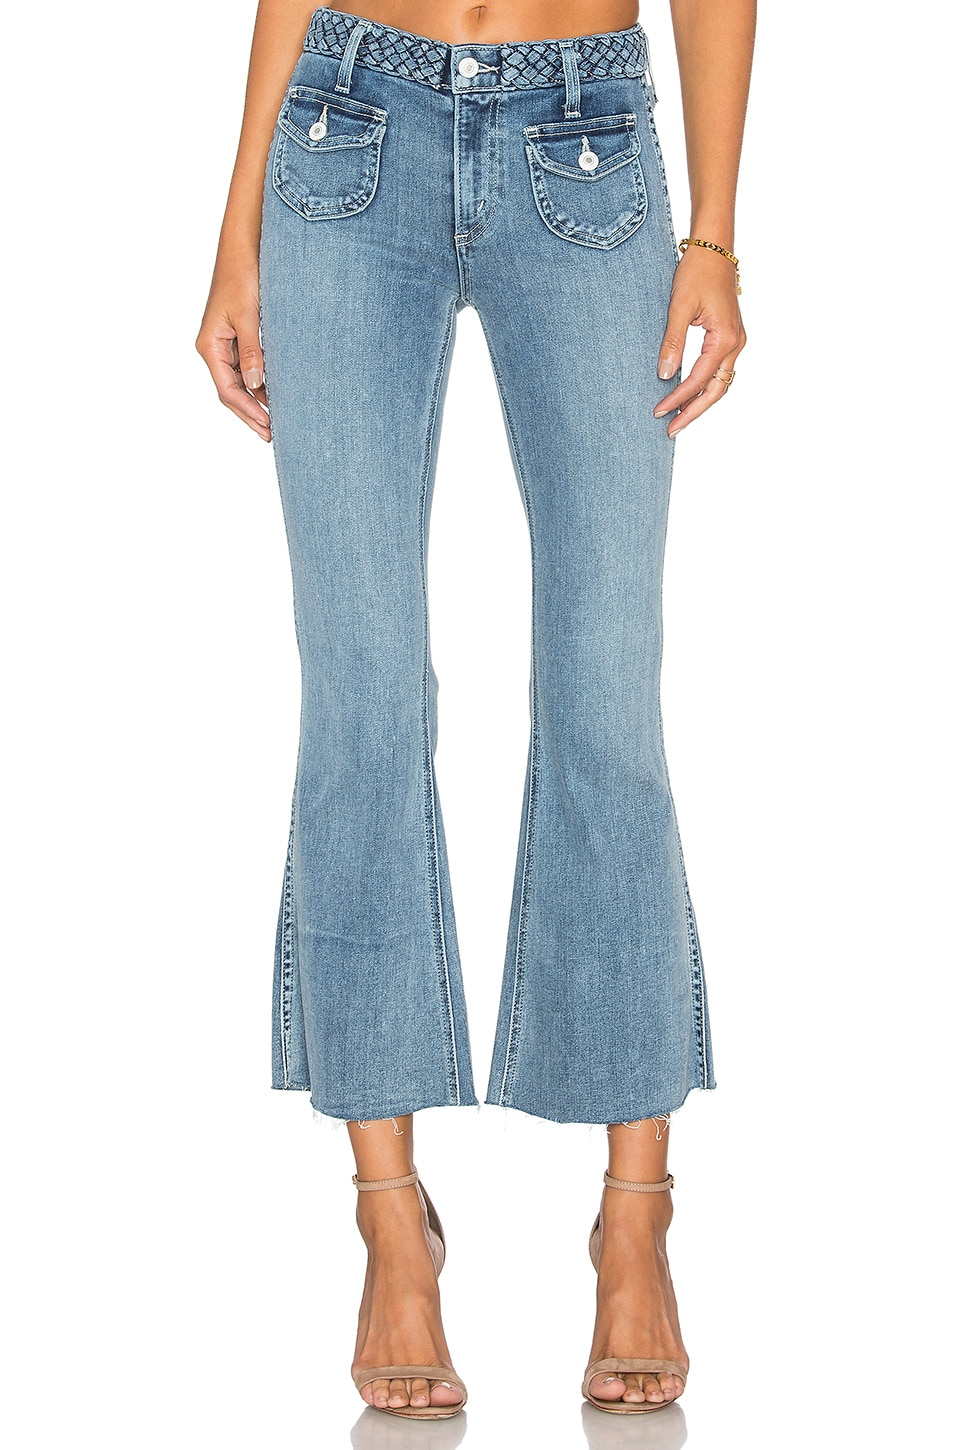 x REVOLVE Penelope Crop Flare Jean by Tularosa